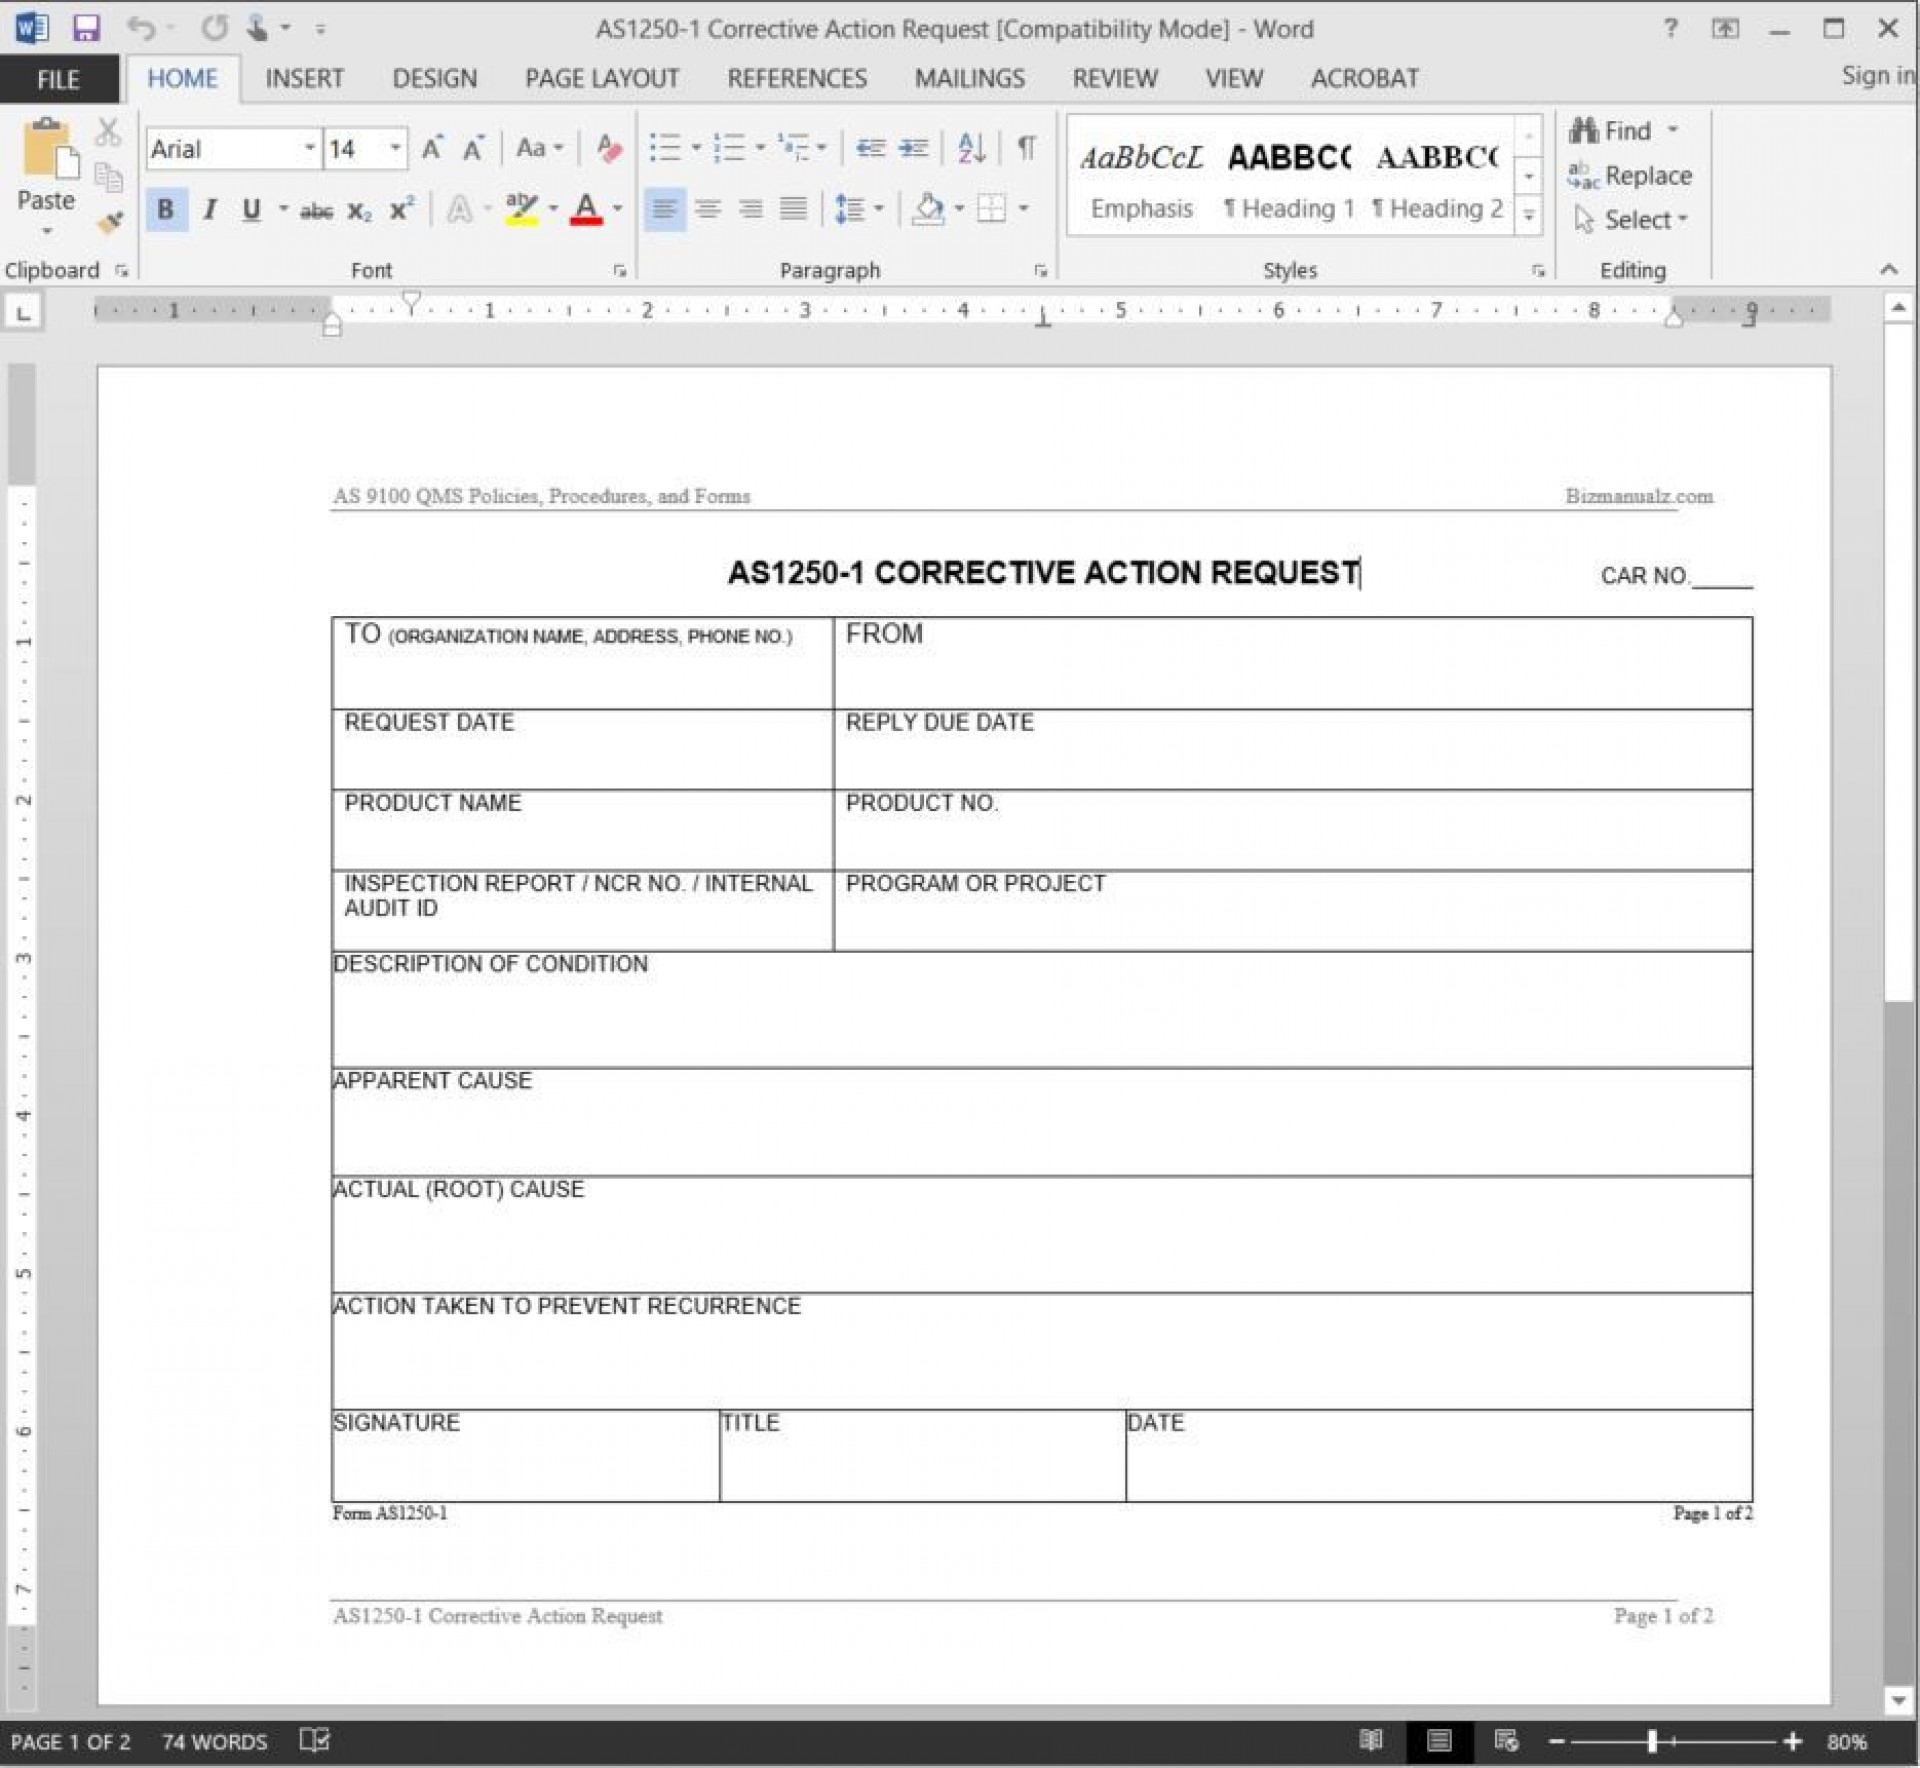 005 Stunning Corrective Action Form Template Highest Clarity  Free 8d Request Iso 9001 Employee1920